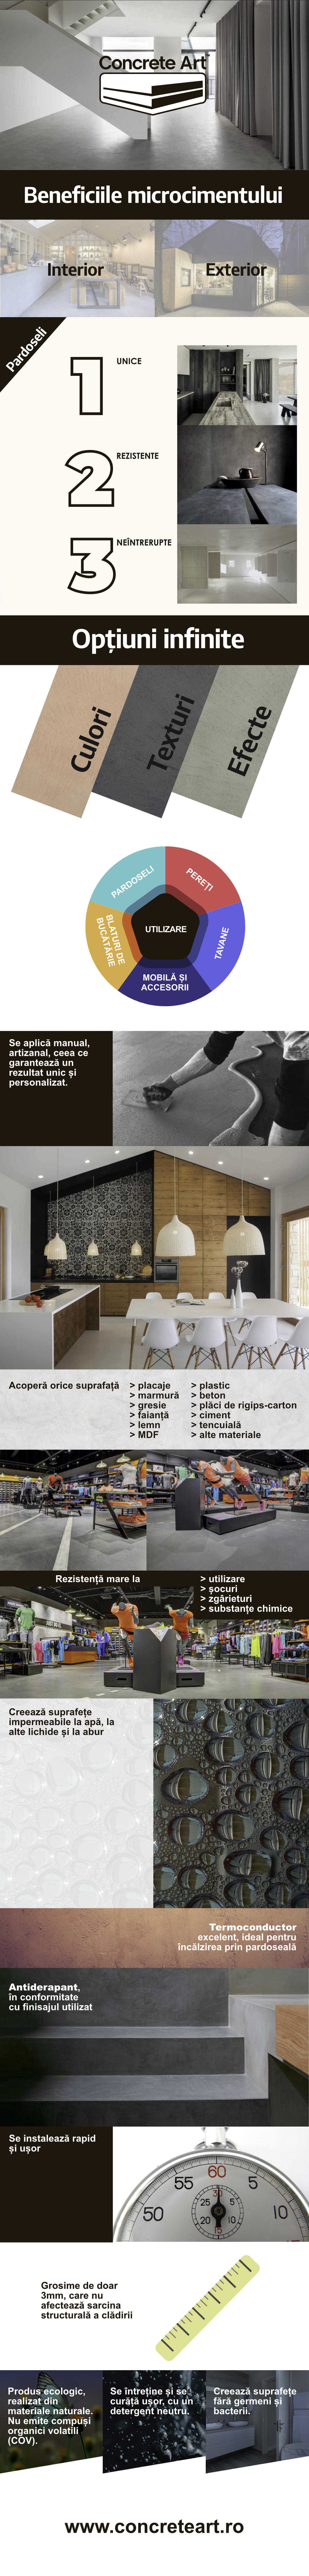 Infografic microciment | Microtopping | Concrete Art Romania